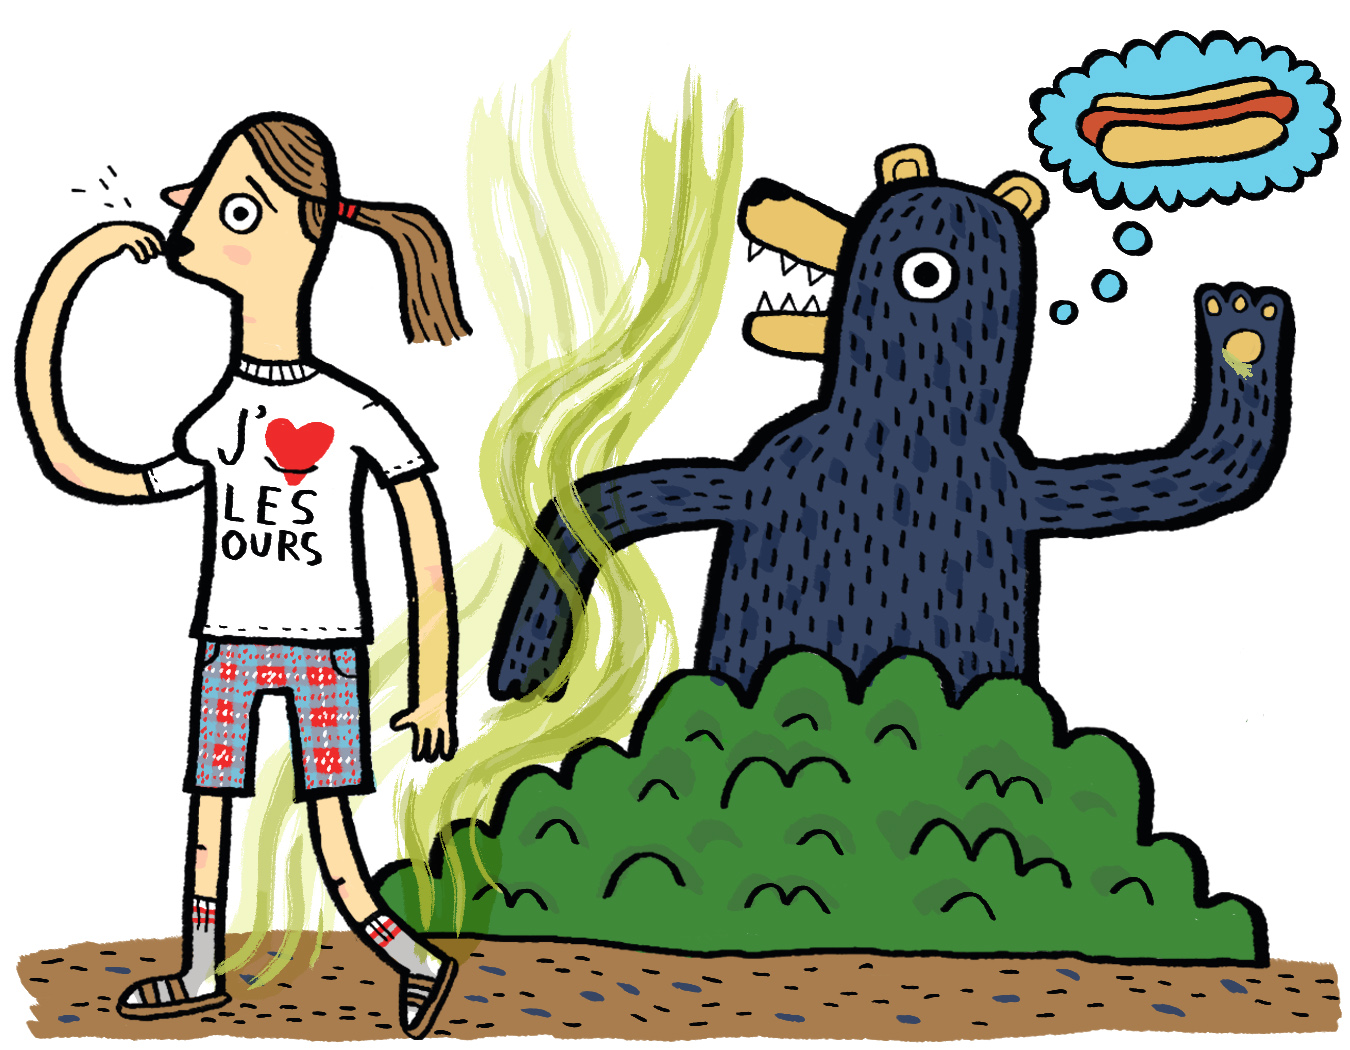 Fashion tips to avoid getting eaten by bears!